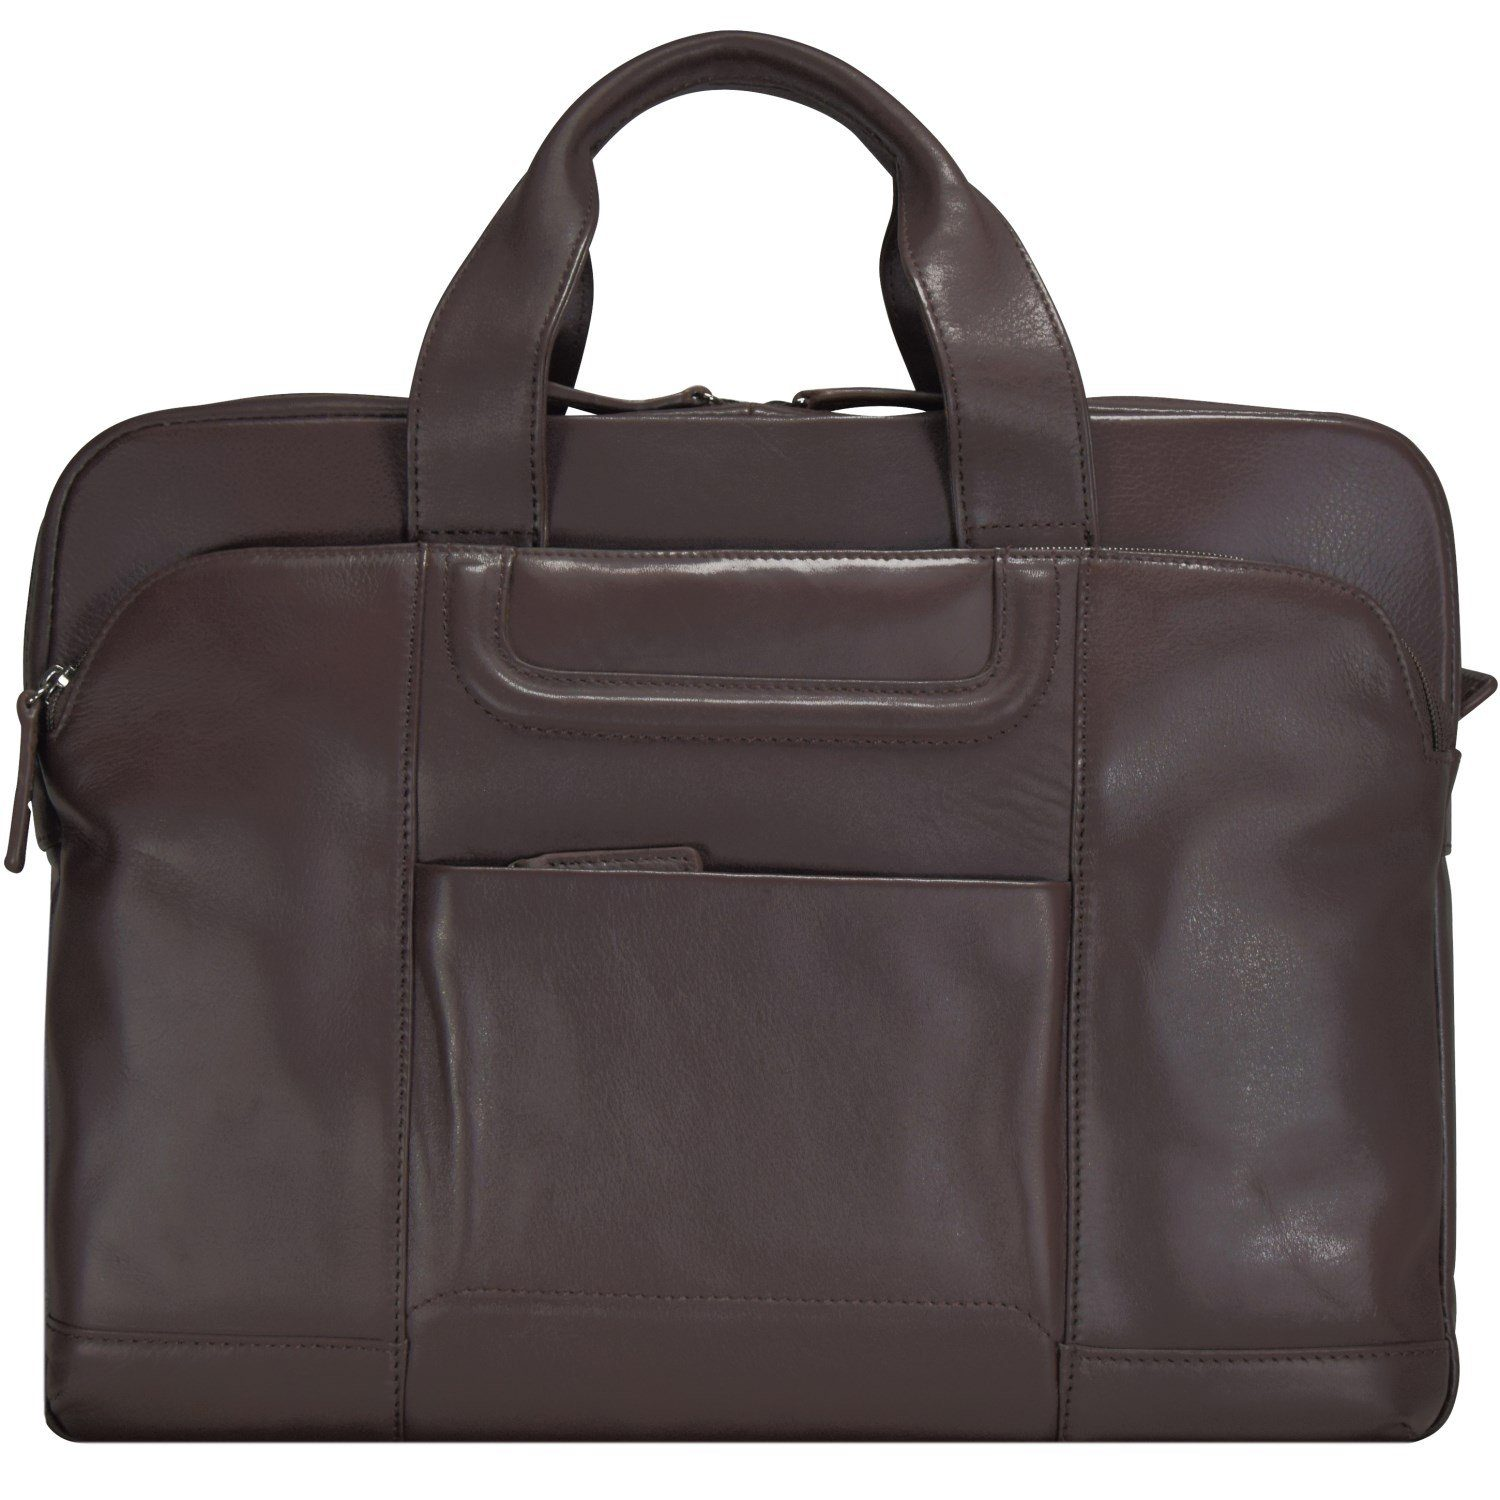 d & n d&n Classic Brown Aktentasche Leder 40 cm Laptopfach